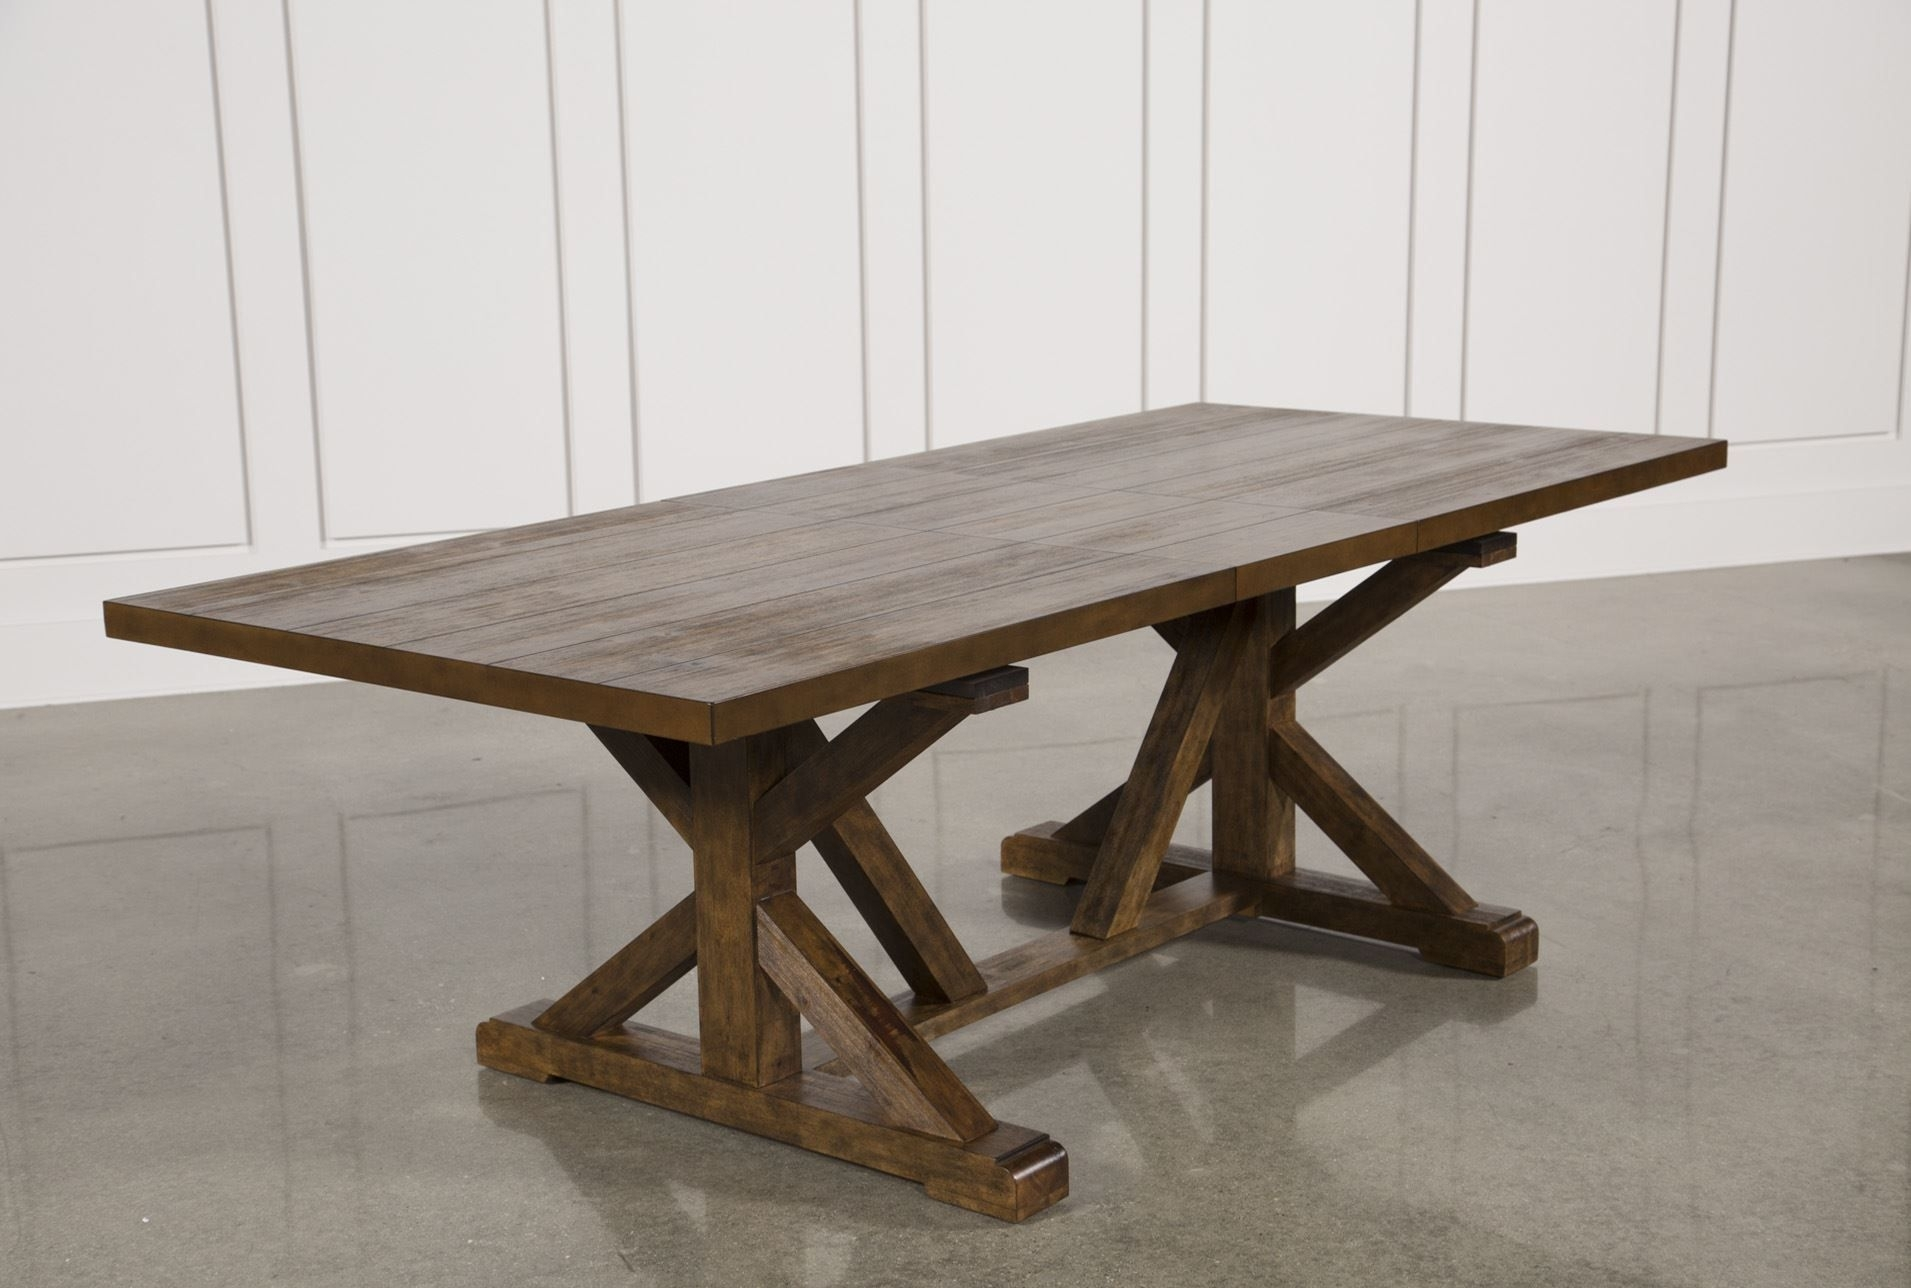 Chandler Extension Dining Table | For The Home | Pinterest Regarding Recent Chandler Extension Dining Tables (View 2 of 20)